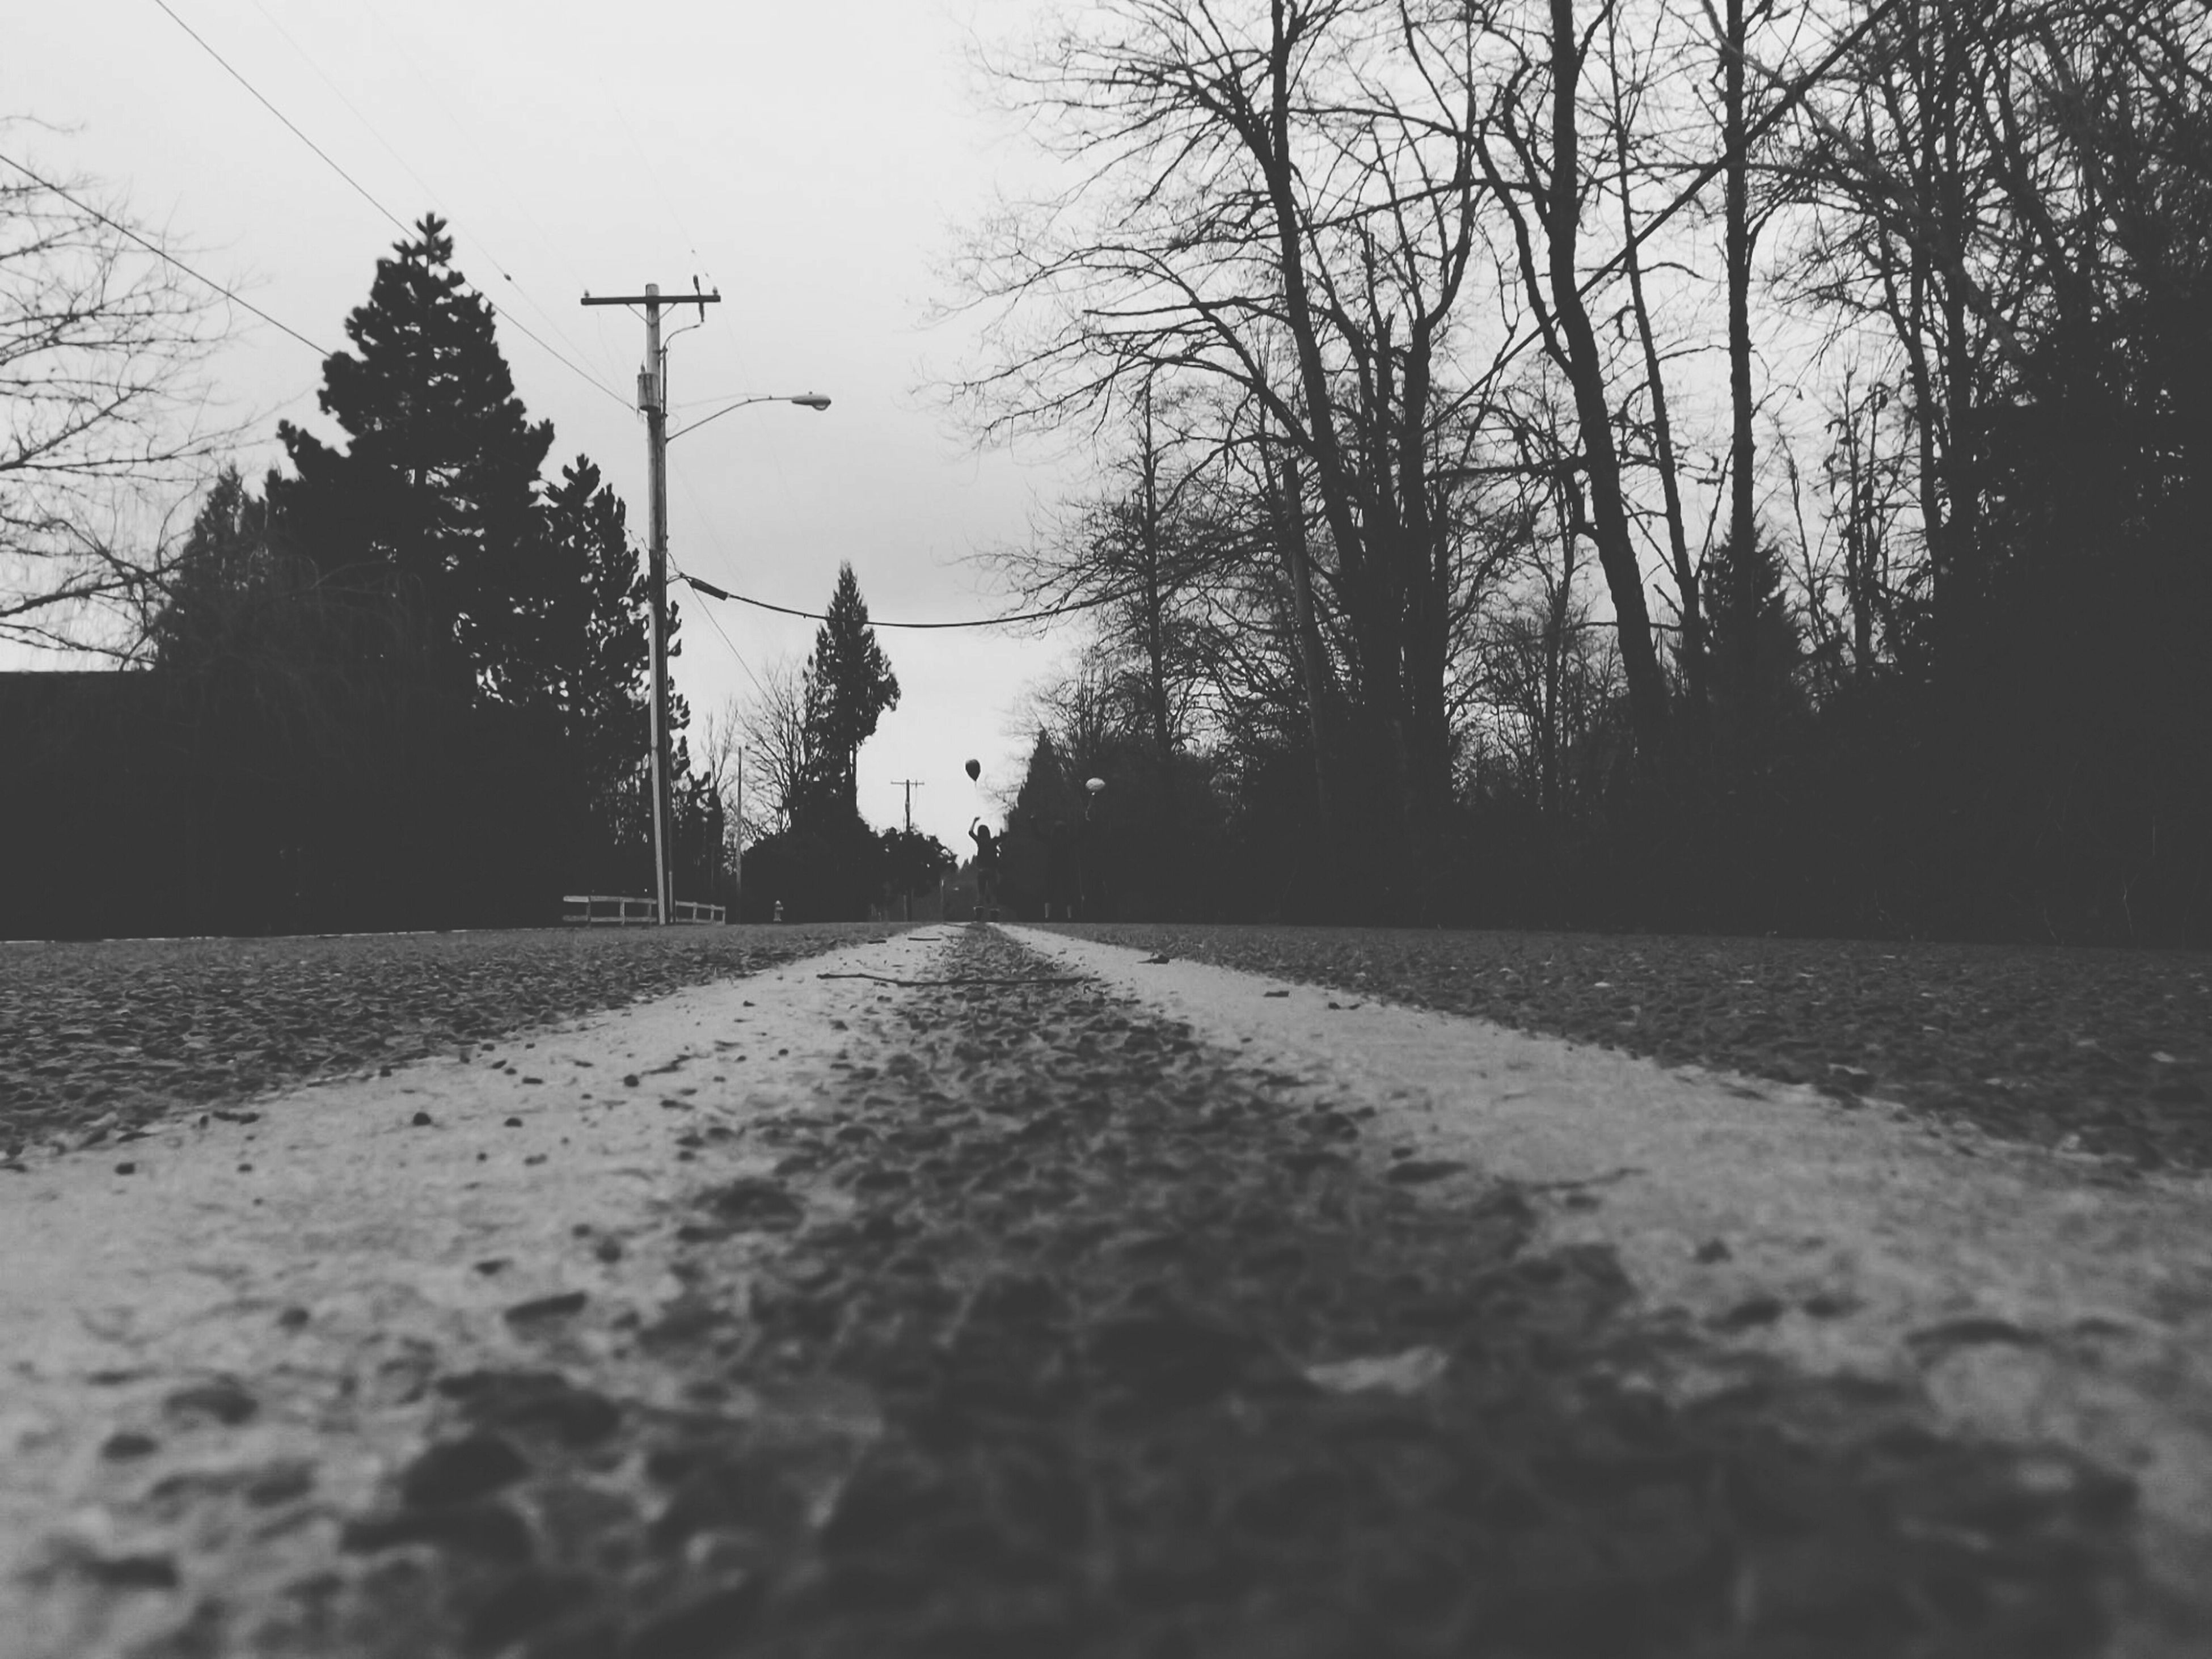 the way forward, bare tree, tree, road, clear sky, street, diminishing perspective, surface level, transportation, sky, vanishing point, building exterior, built structure, architecture, outdoors, silhouette, no people, nature, asphalt, long